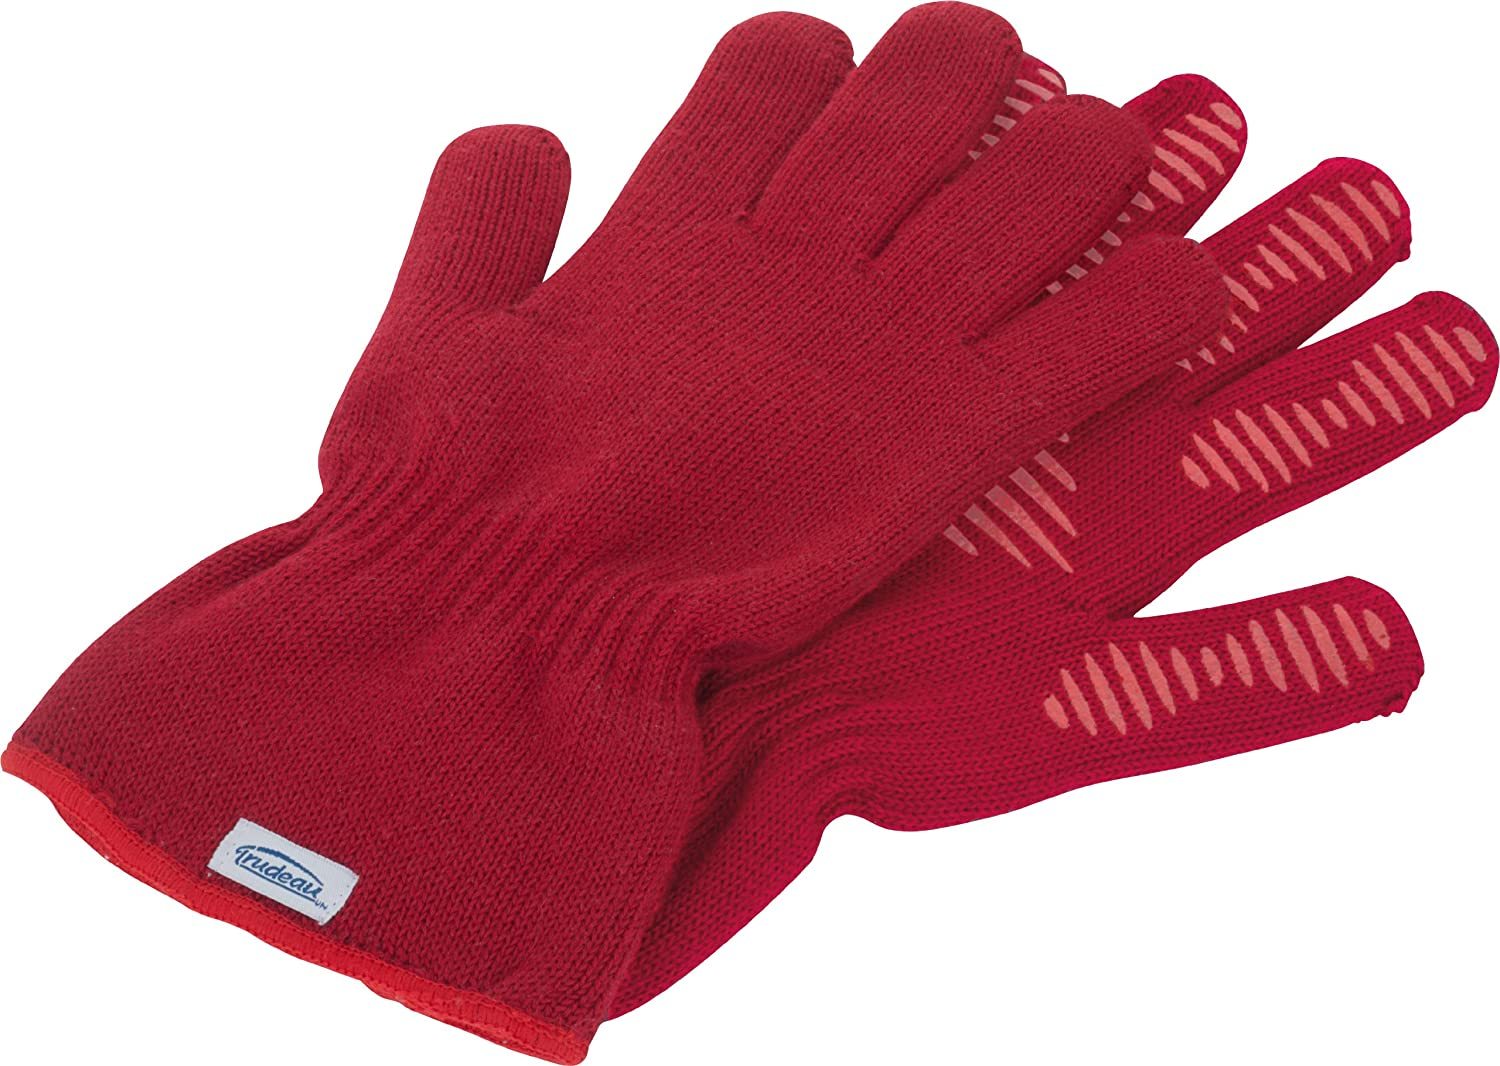 Trudeau 09911024 Oven Gloves, Set of 2 (Red)